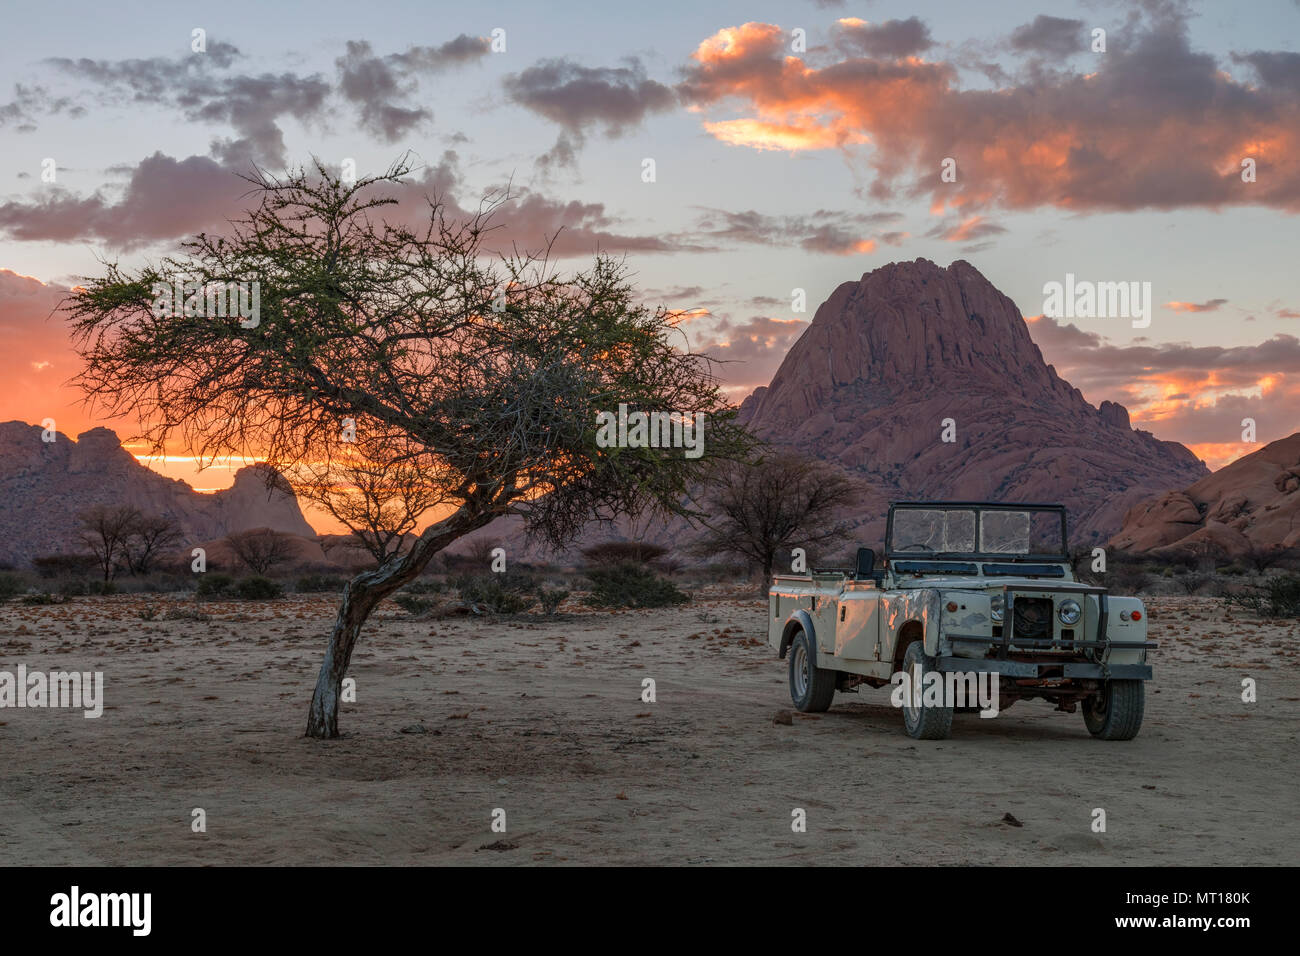 Spitzkoppe, Usakos, Namibie, Afrique du Sud Photo Stock